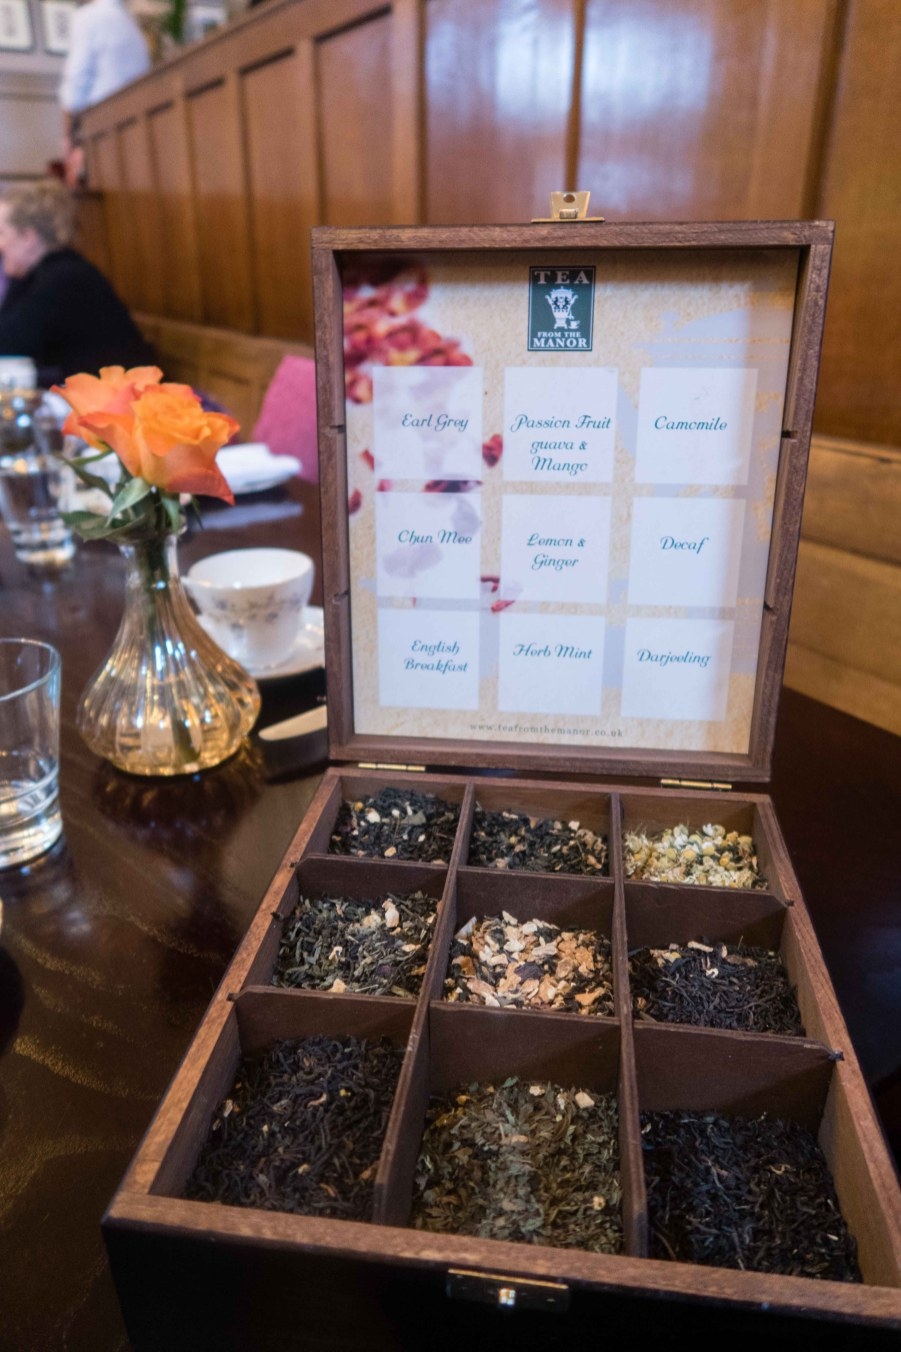 The tea box with samples of each tea offered